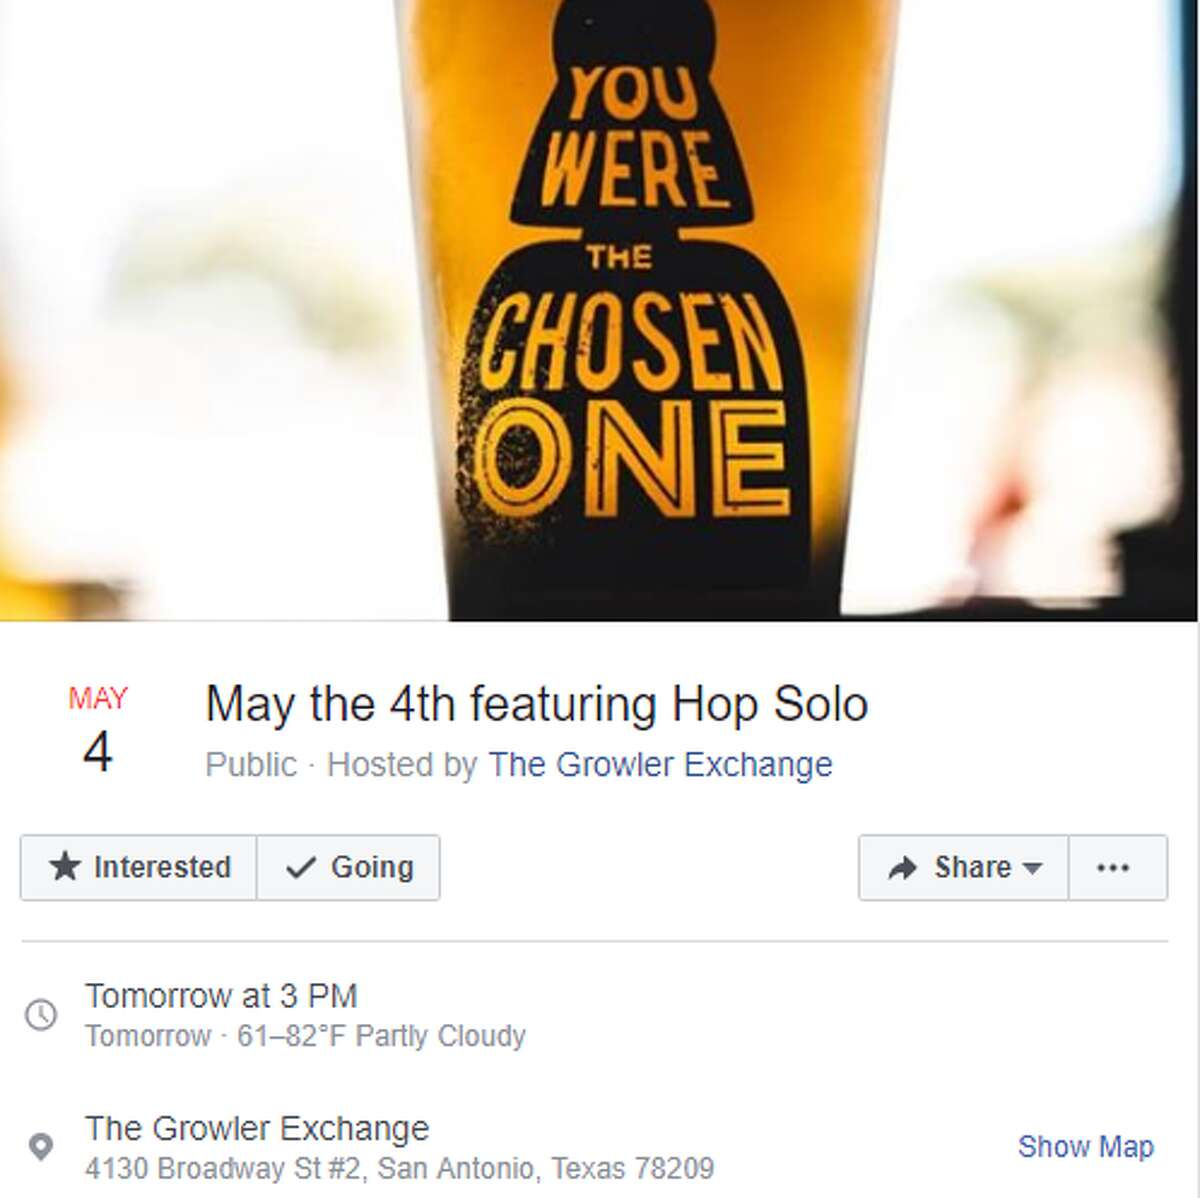 The Growler Exhcange's May the 4th Featuring Hop Solo